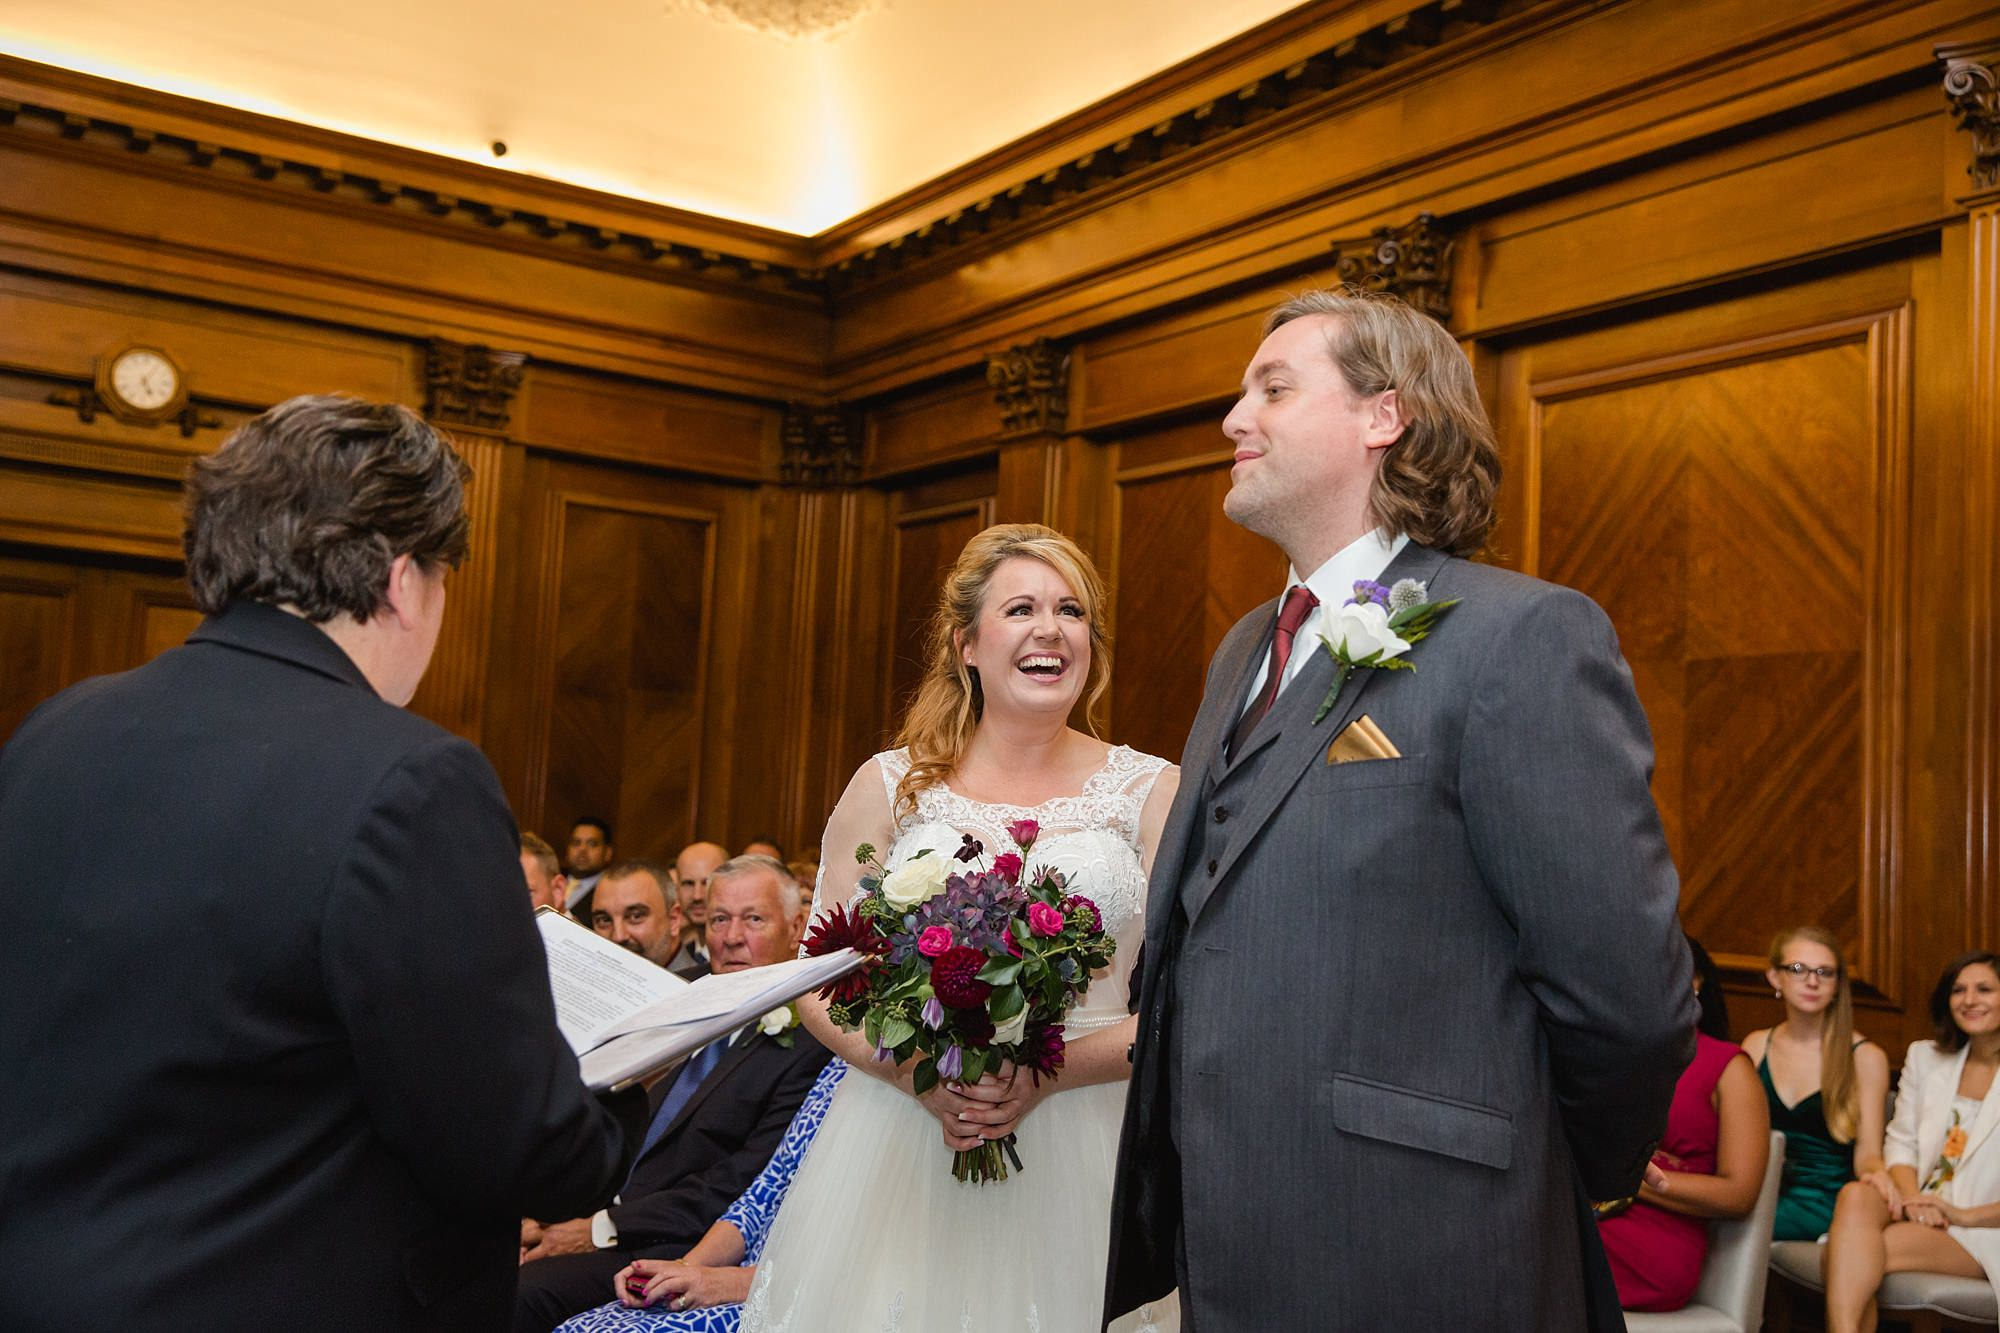 Old Marylebone Town Hall wedding photography bride laughs with groom